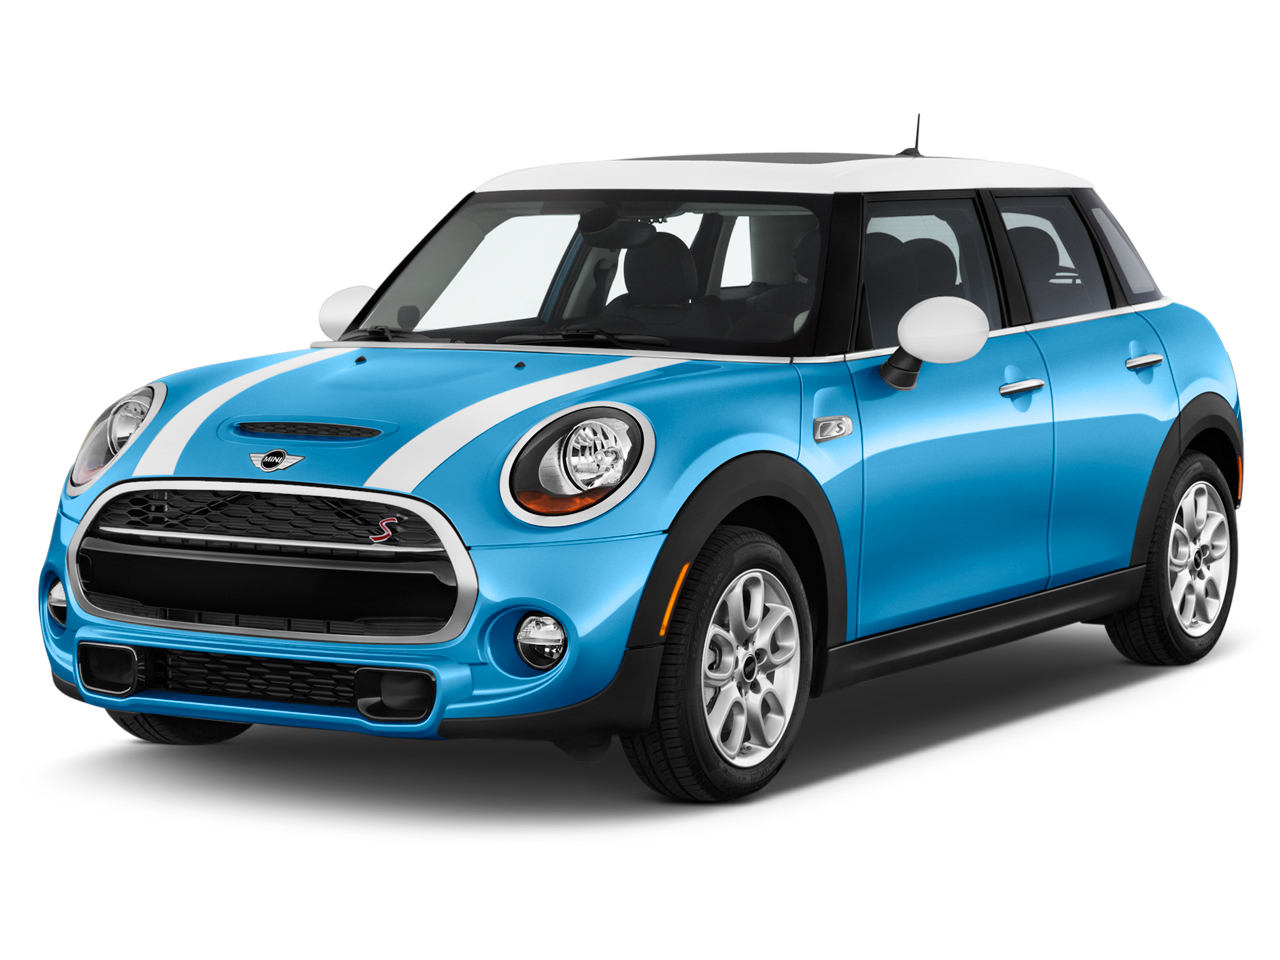 New And Used Mini Cooper Hardtop 4 Door Prices Photos Reviews Specs The Car Connection